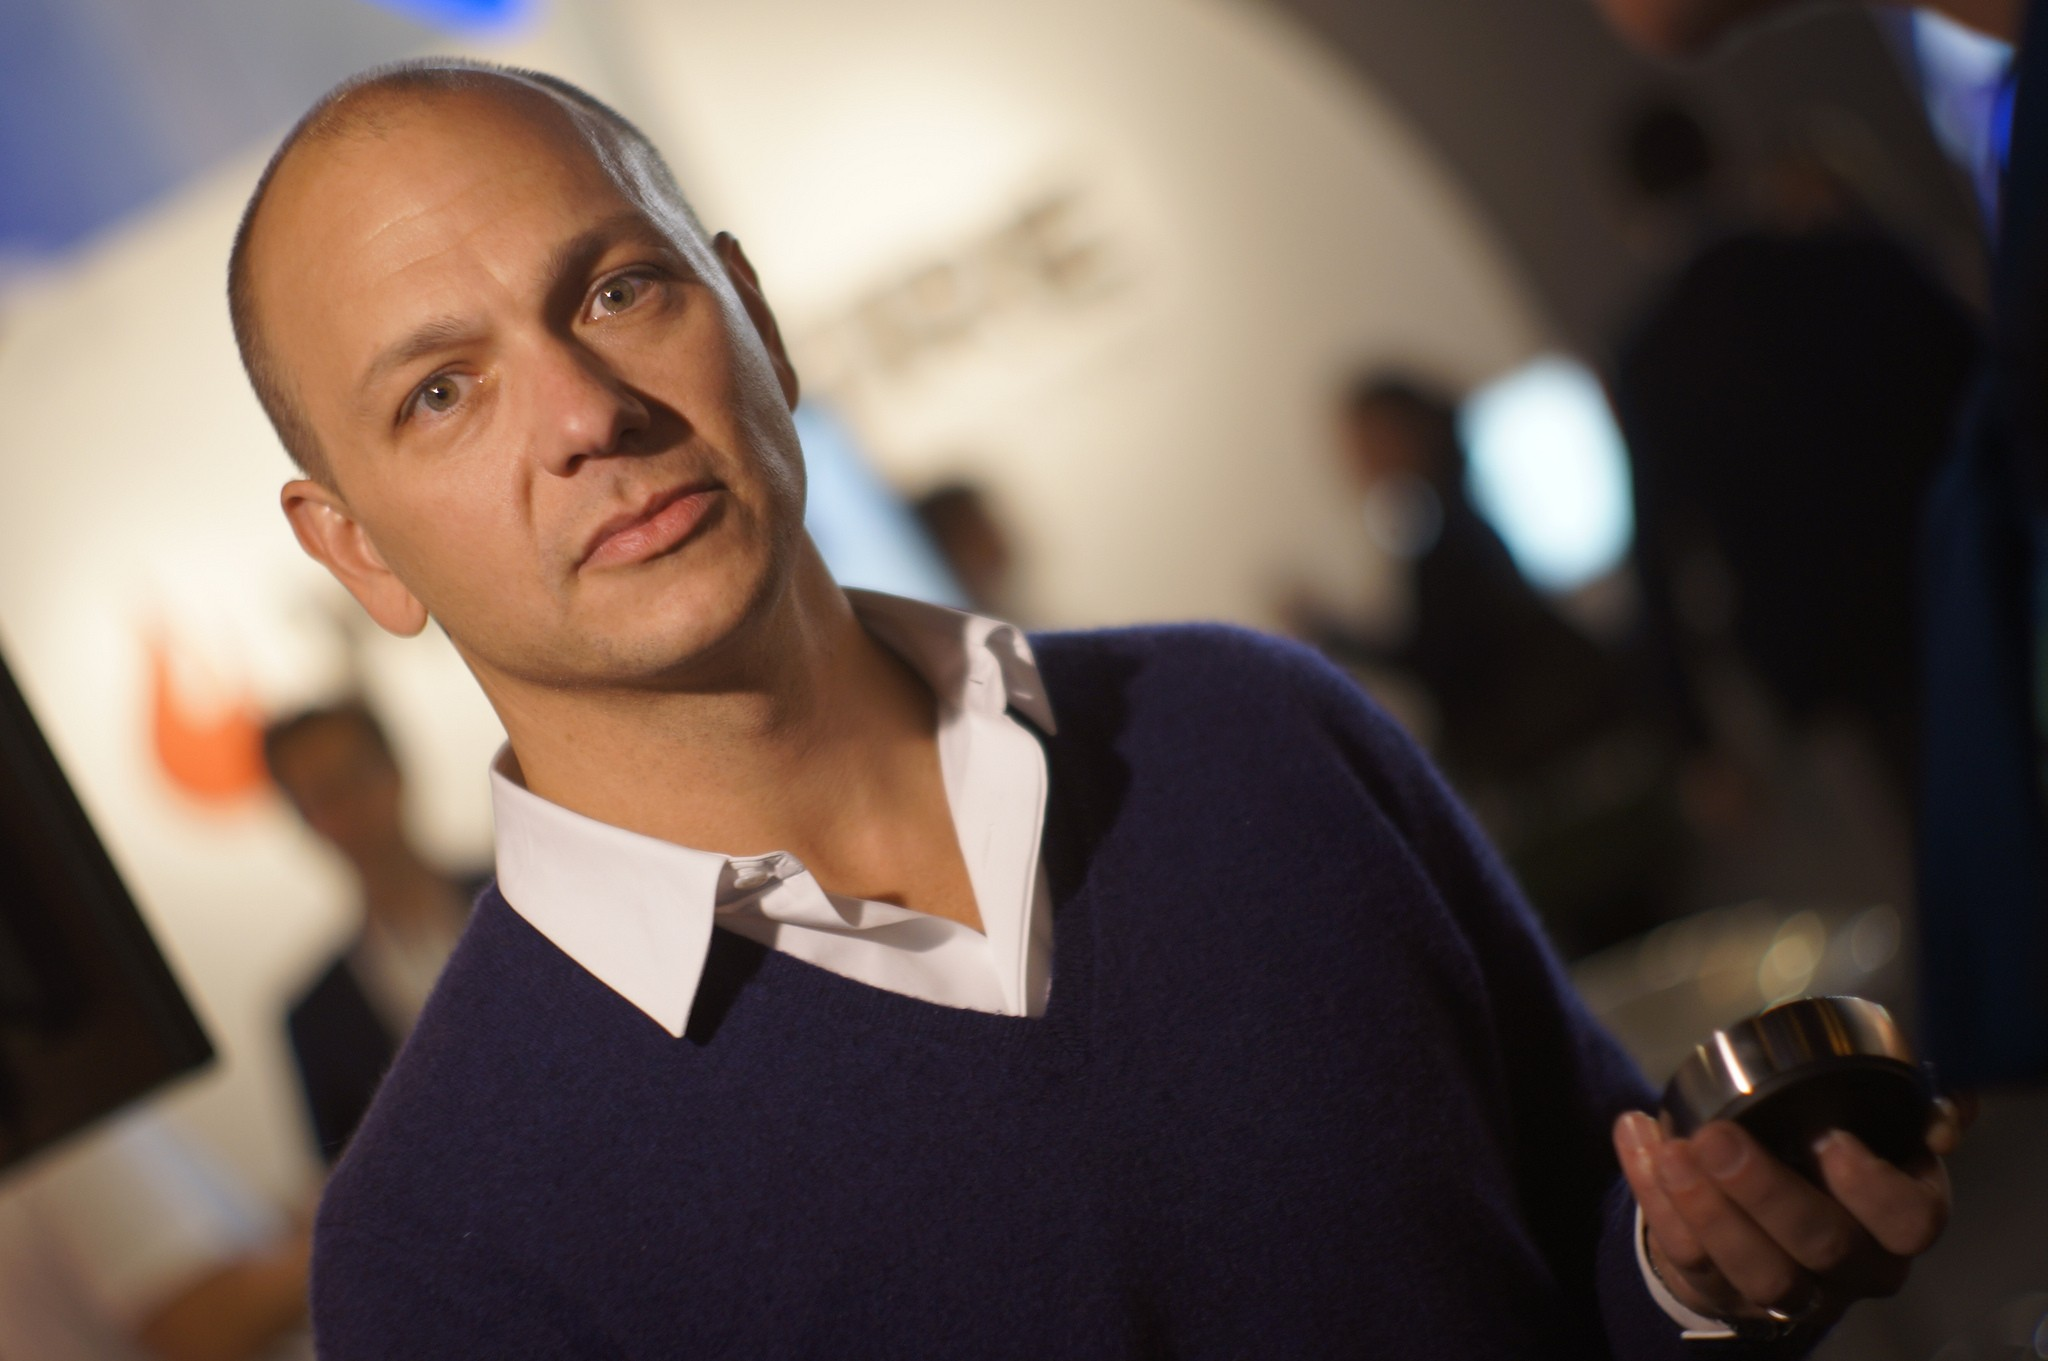 Nest Lab 創辦人兼 CEO Tony Fadell。圖片來源:OFFICIAL LEWEB PHOTOS@flickr, by CC 2.0